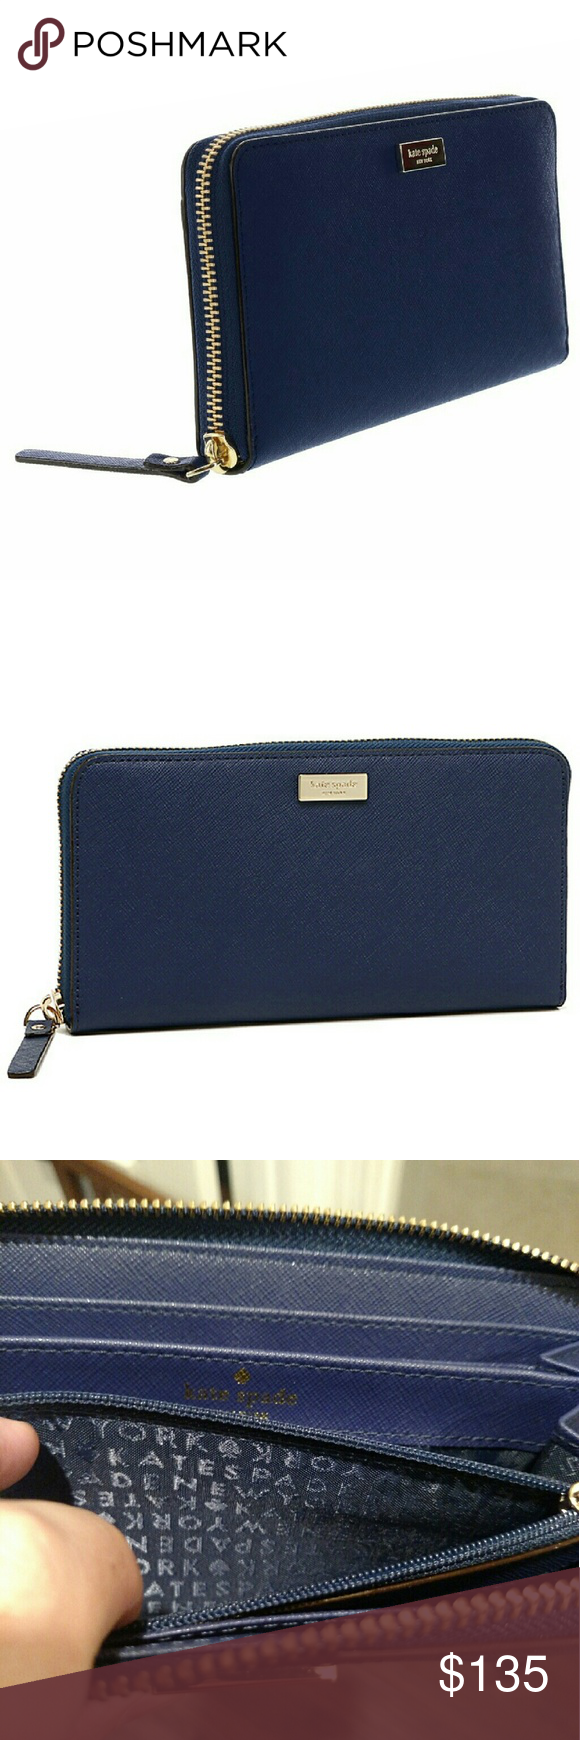 NWT Kate Spade navy wallet NWT Kate Spade neda Newbury lane wallet.  Navy blue color with yellow gold zipper.  All Navy interior.  Gotta get it before it's gone! kate spade Bags Wallets